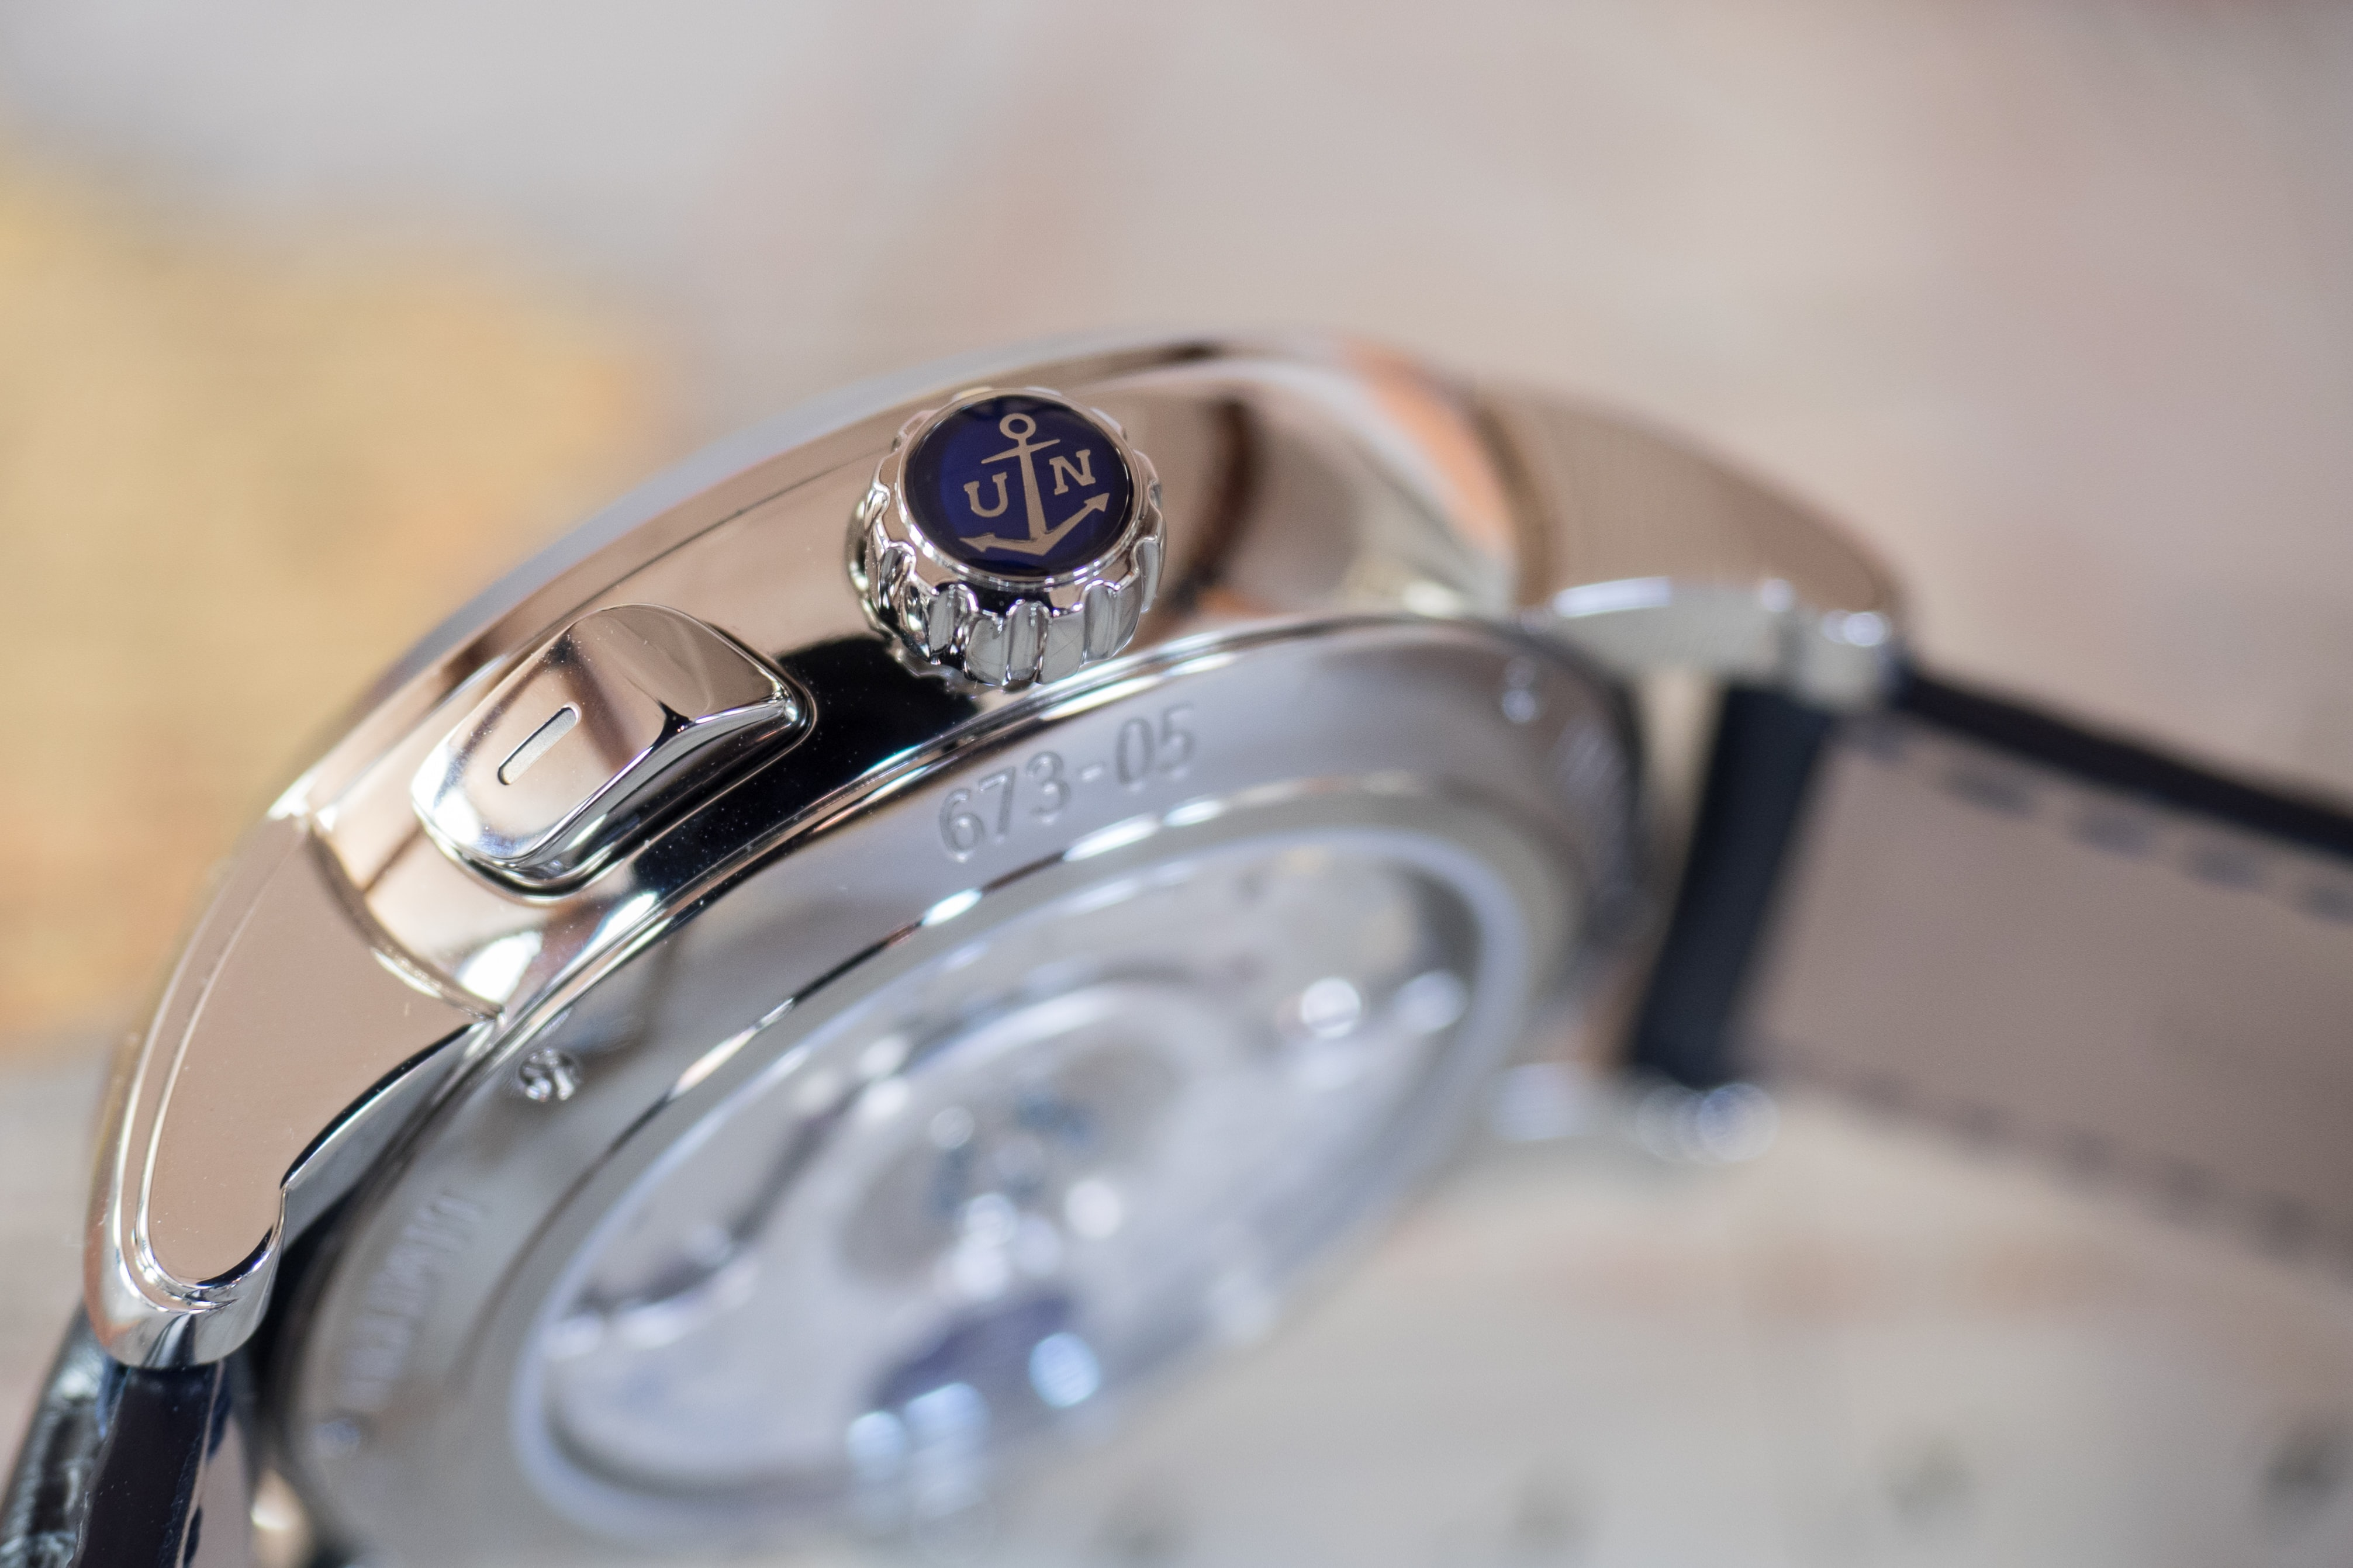 Ulysse Nardin Classic Sonata crown Hands-On: The Ulysse Nardin Classic Sonata, A Self-Winding Alarm Watch With A Cathedral Gong (And More) Hands-On: The Ulysse Nardin Classic Sonata, A Self-Winding Alarm Watch With A Cathedral Gong (And More) PA190340